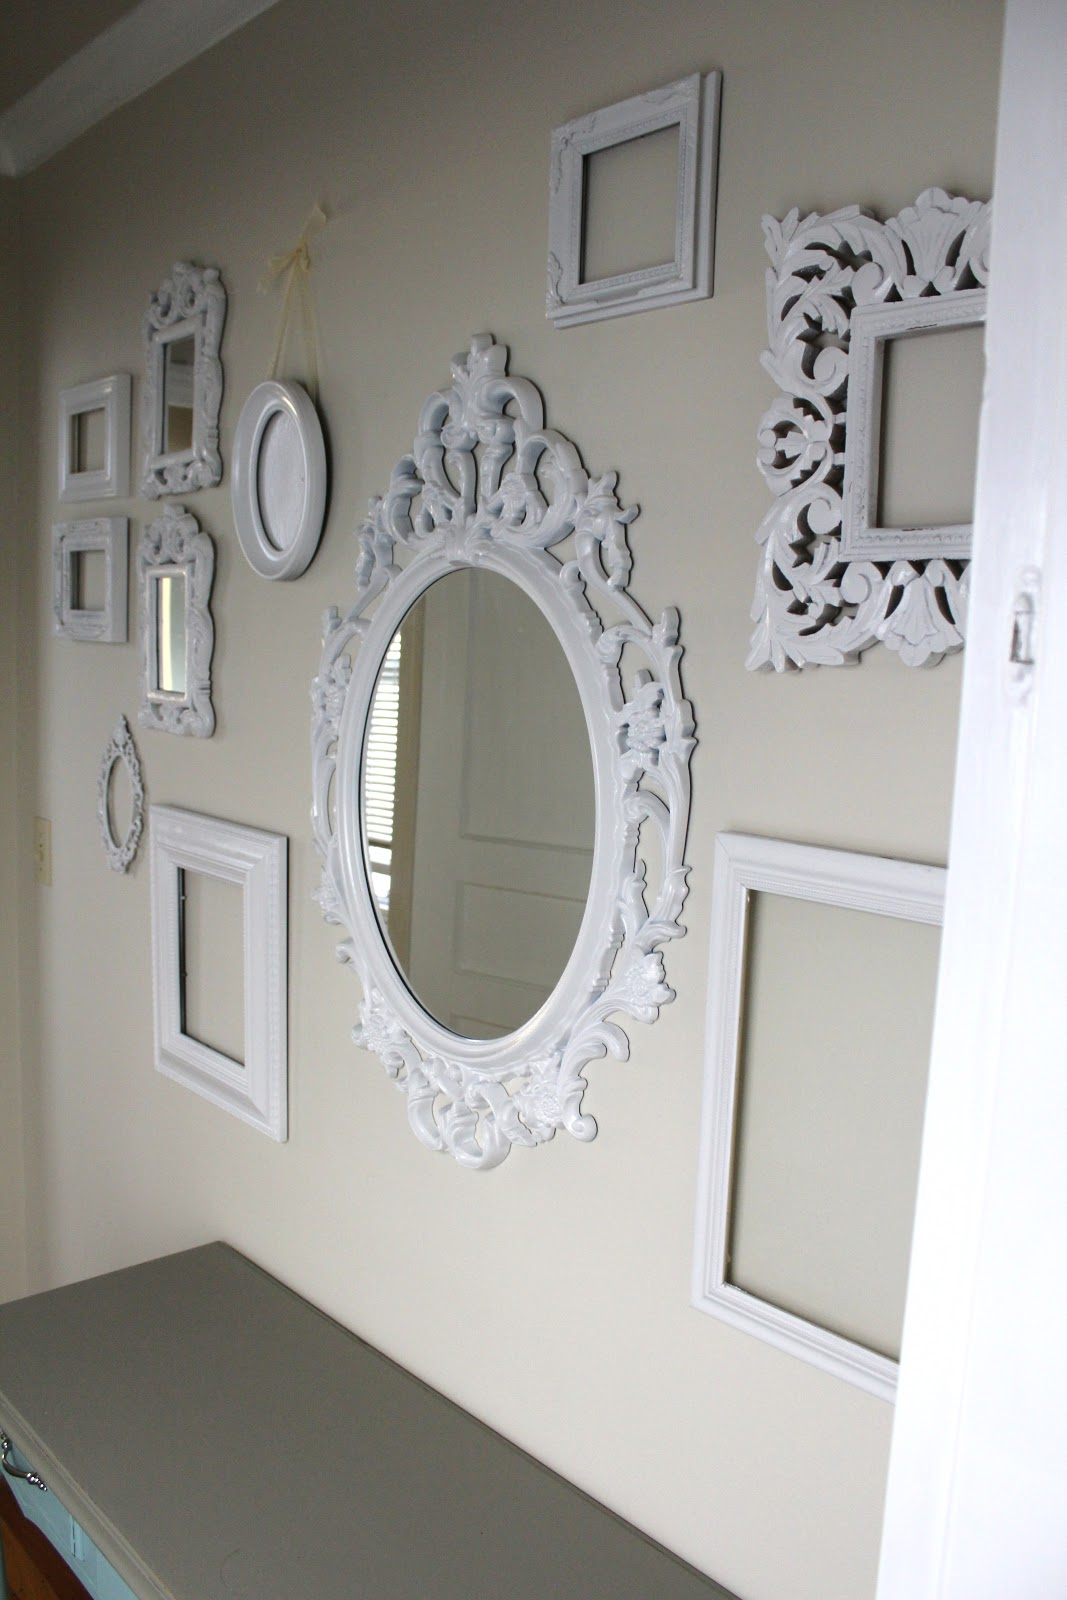 Cup Half Full Gallery Wall Of White Ornate Frames